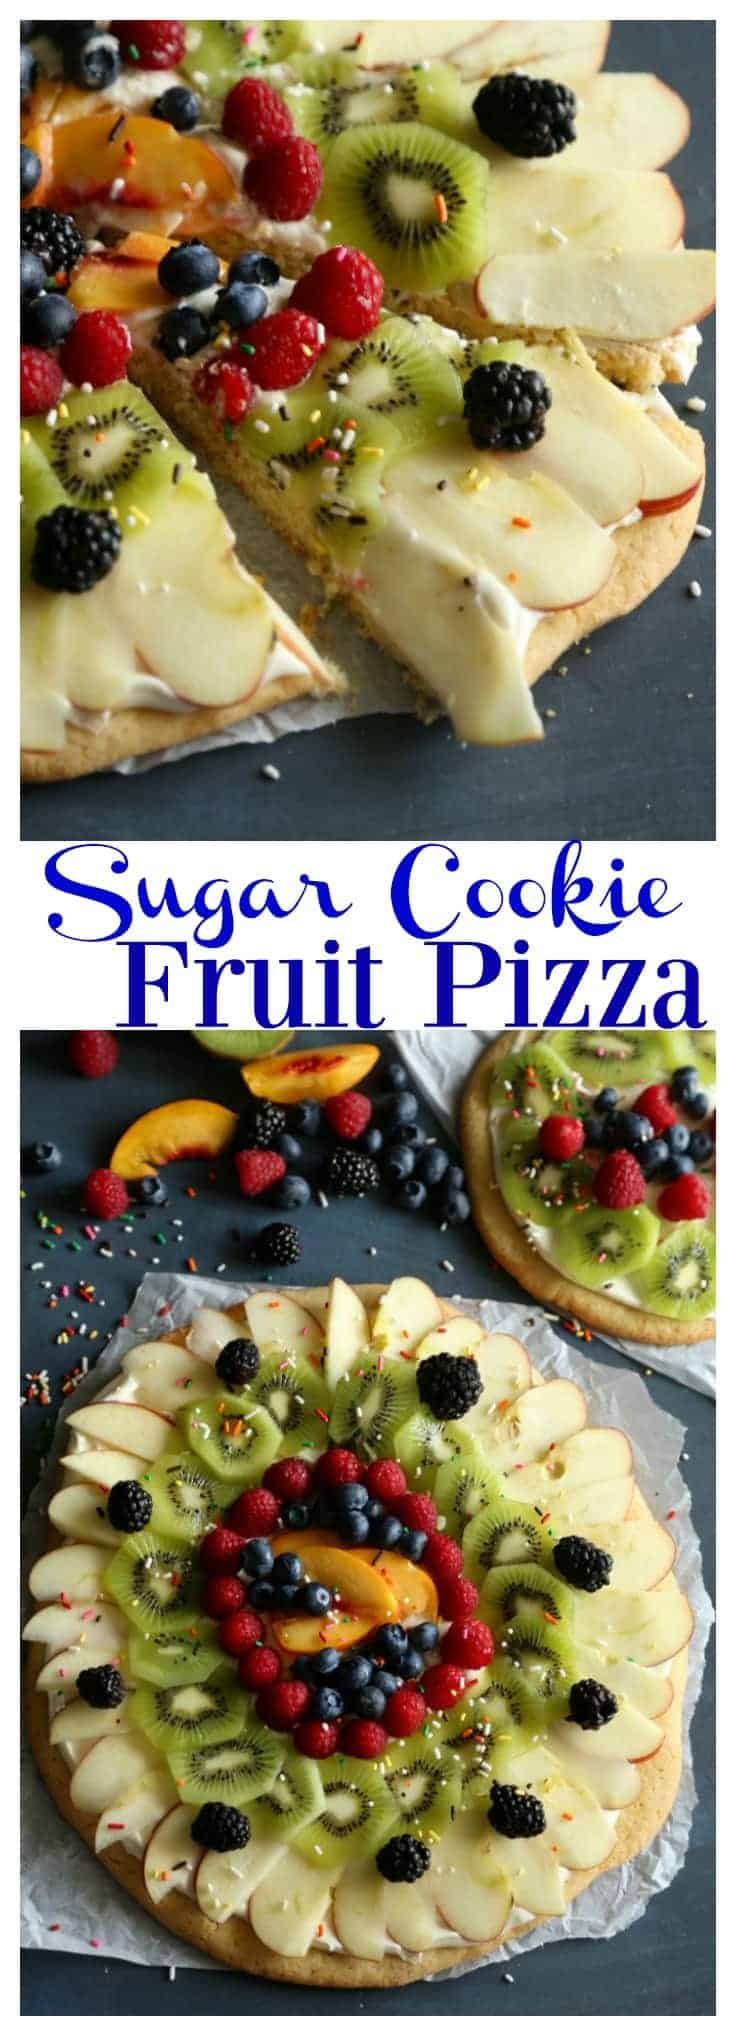 Sugar Cookie Fruit Pizza with cream cheese frosting. This easy dessert will soon become a family favorite. Raspberries, kiwi, peaches, blueberries - choose your favorite fruit toppings